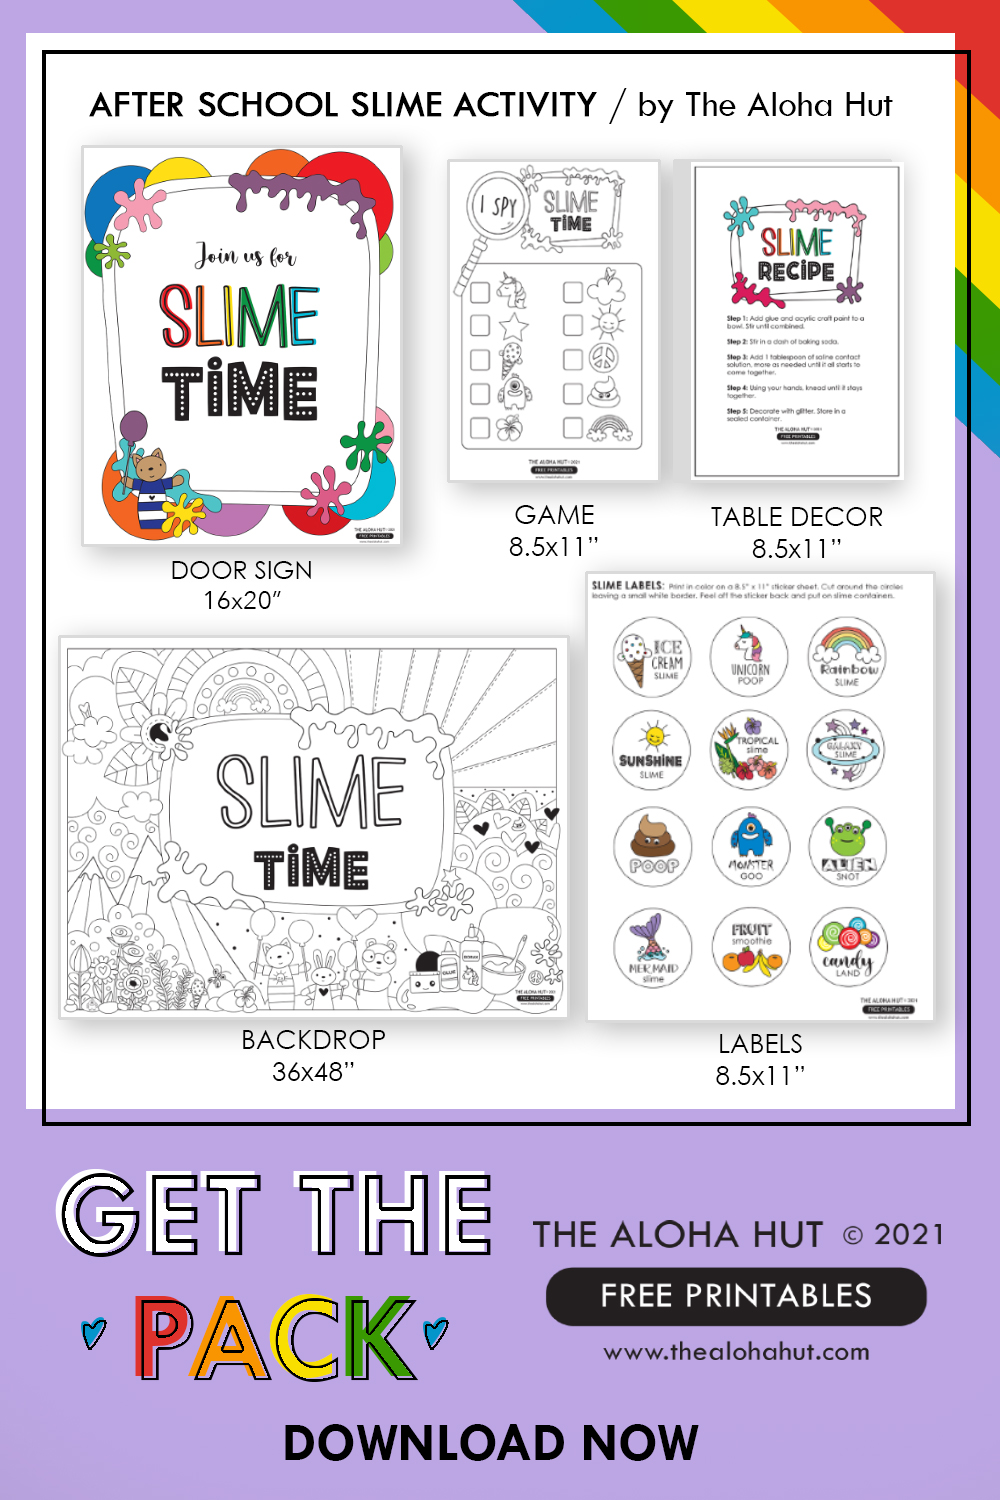 After School Slime Activity Pack - FREE Printables - The Aloha Hut